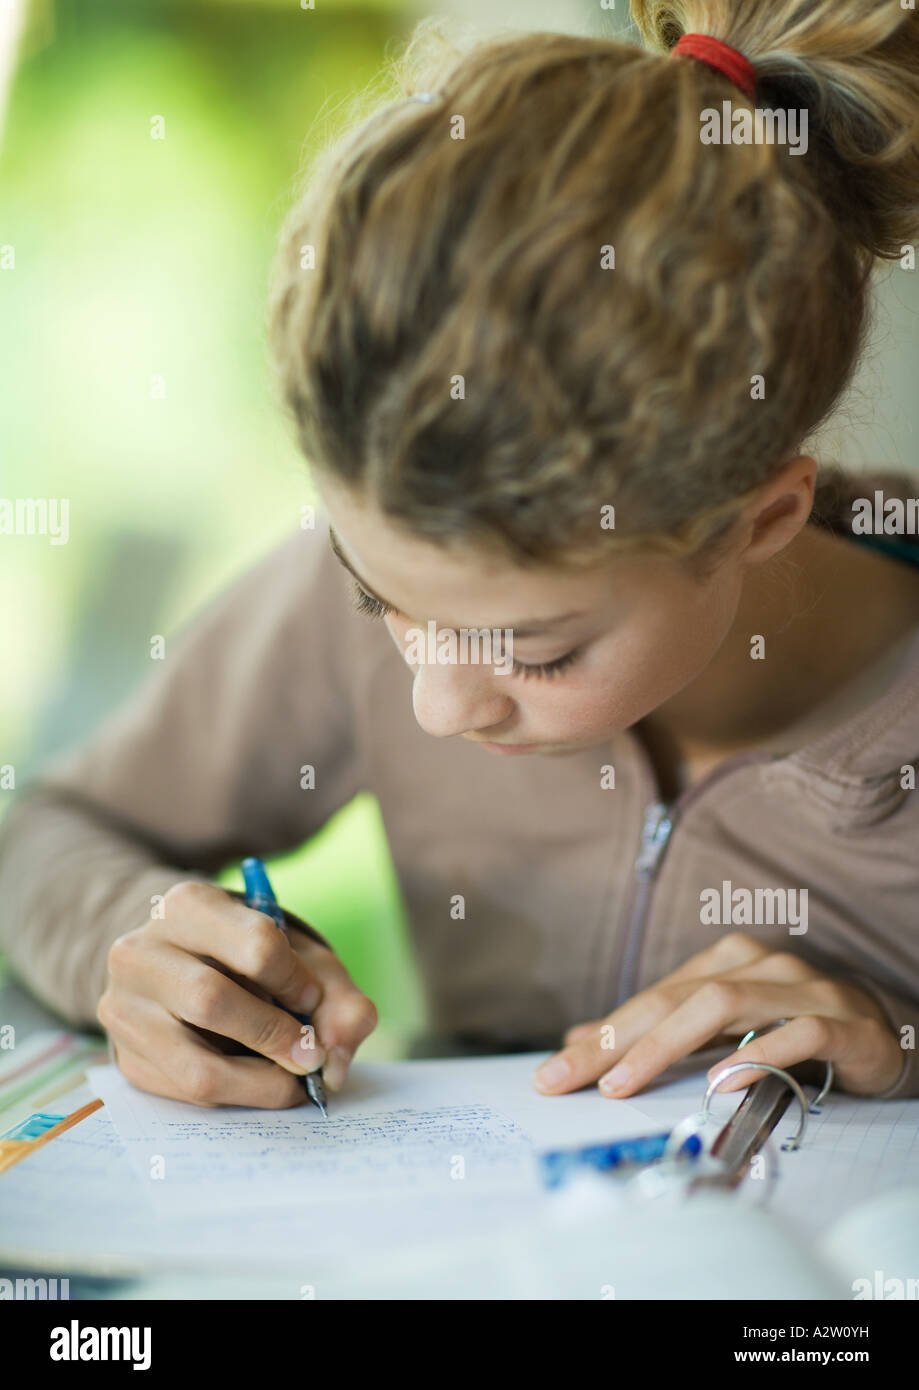 Preteen girl doing homework - Stock Image